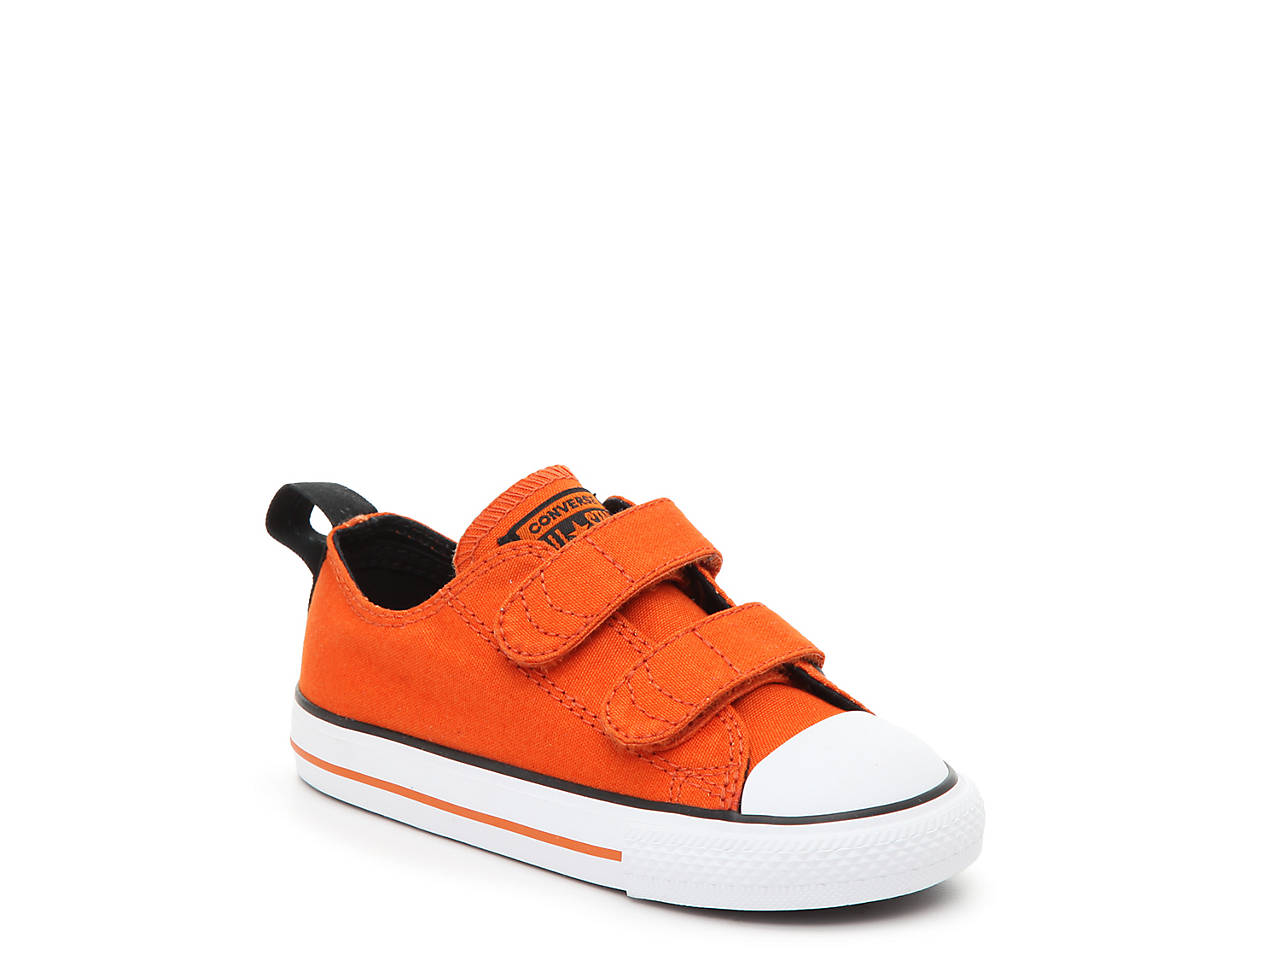 a10c3014ca17 Converse Chuck Taylor All Star 2V Toddler Sneaker Kids Shoes